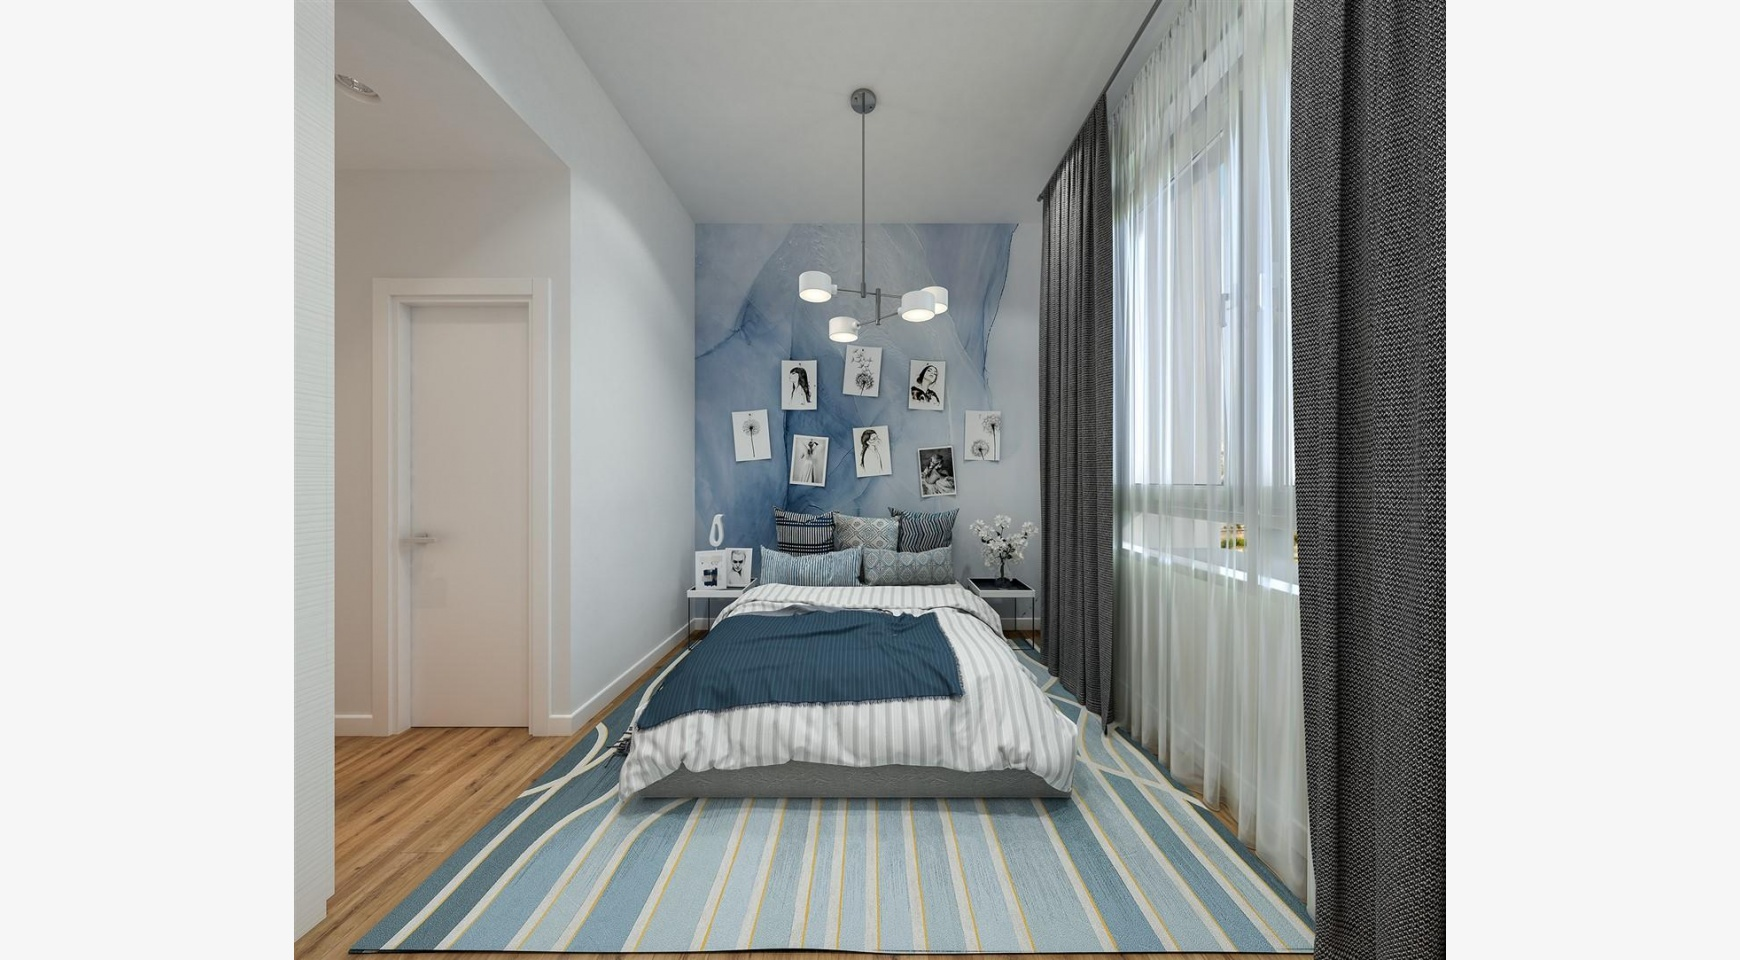 Urban City Residences, Block A. New Spacious 2 Bedroom Apartment 202 in the City Centre - 23